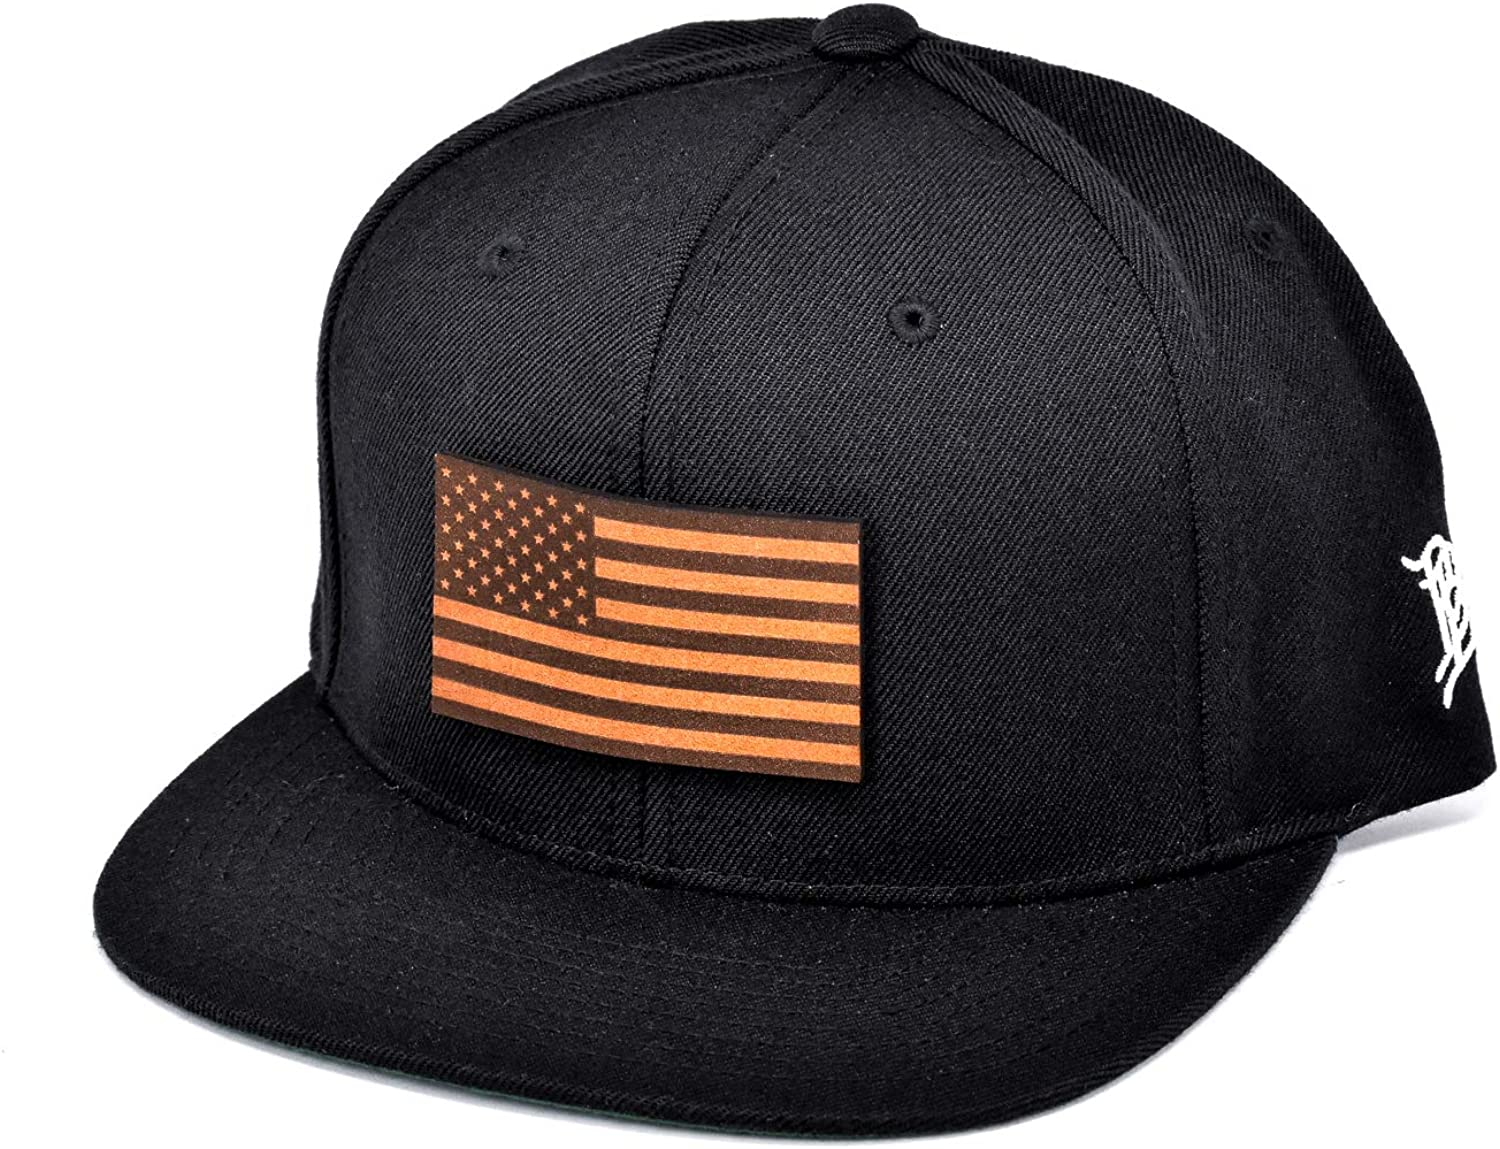 Branded Bills The Old Glory Leather Patch Classic Snapback Hat One Size Fits All Navy